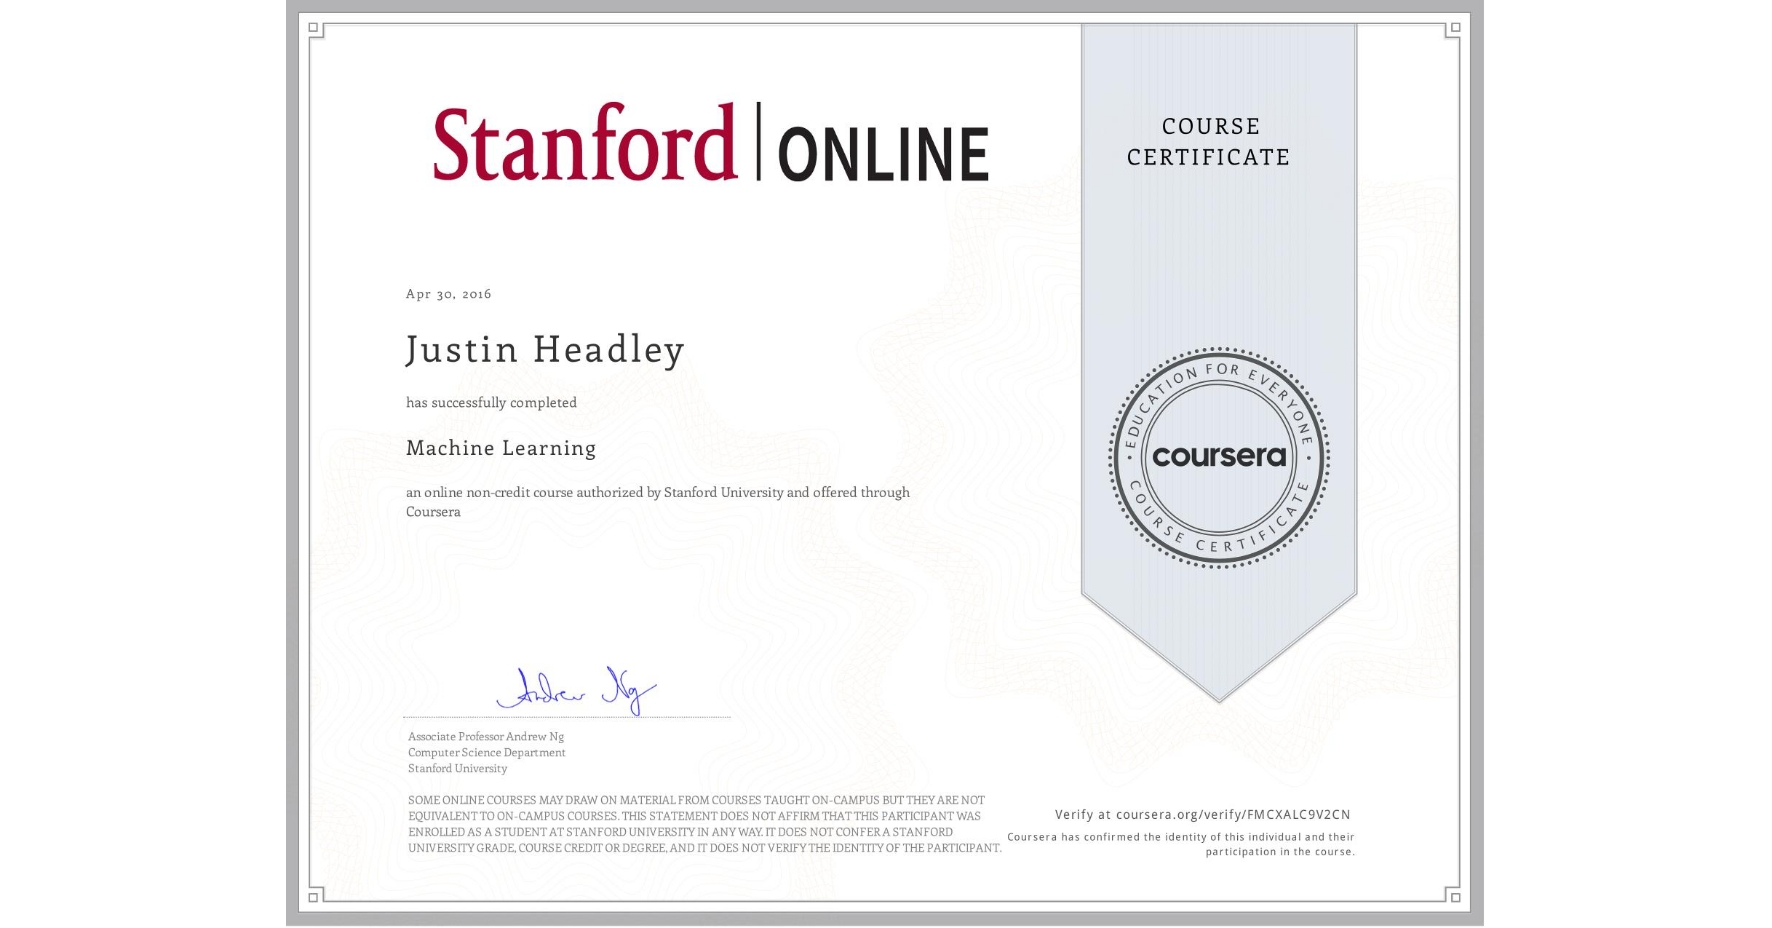 View certificate for Justin Headley, Machine Learning, an online non-credit course authorized by Stanford University and offered through Coursera